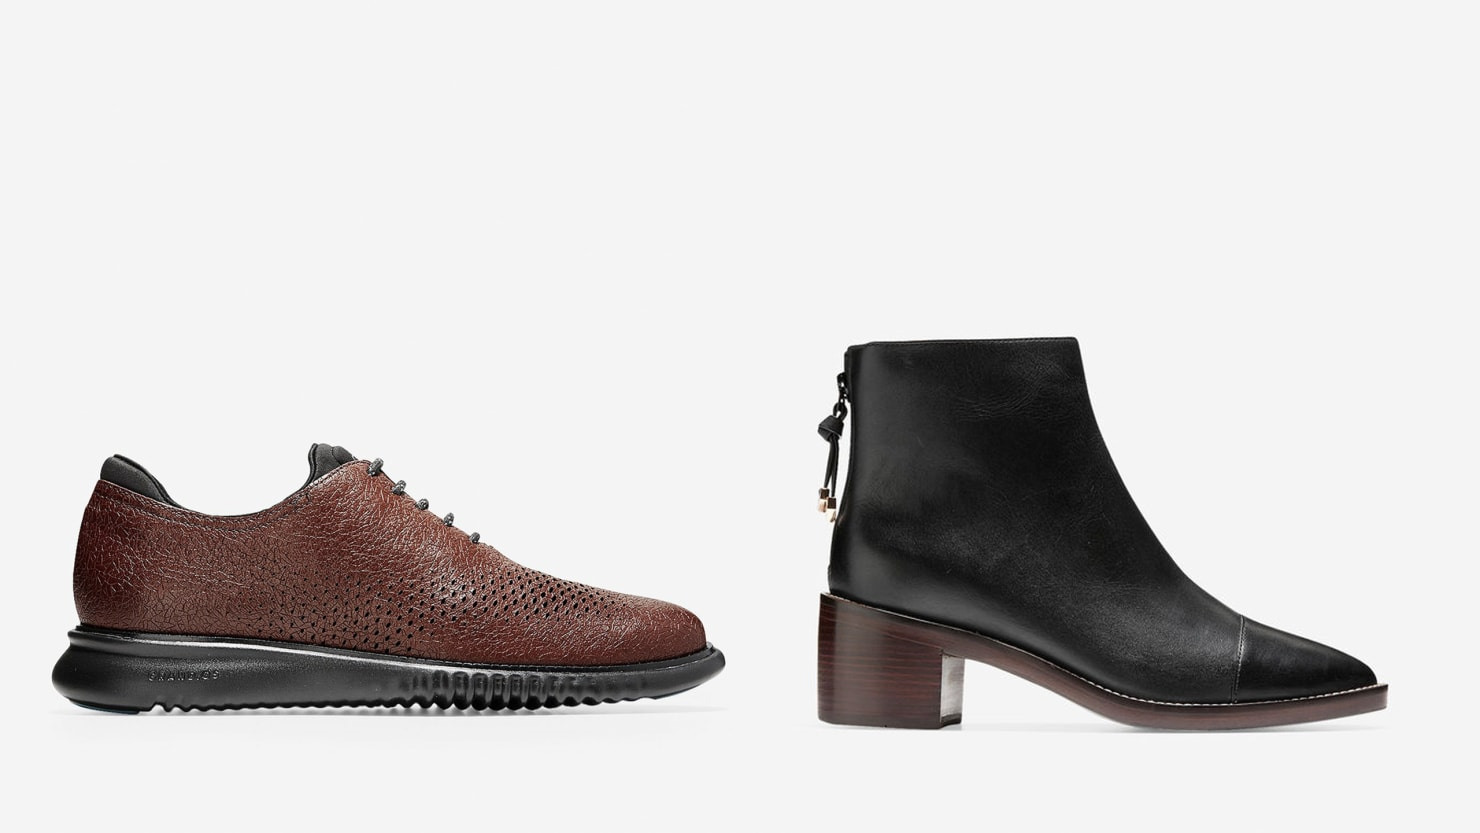 Cole Haan Is Taking Up to 70% Off Men's and Women's Shoes, Accessories, Outerwear, and More